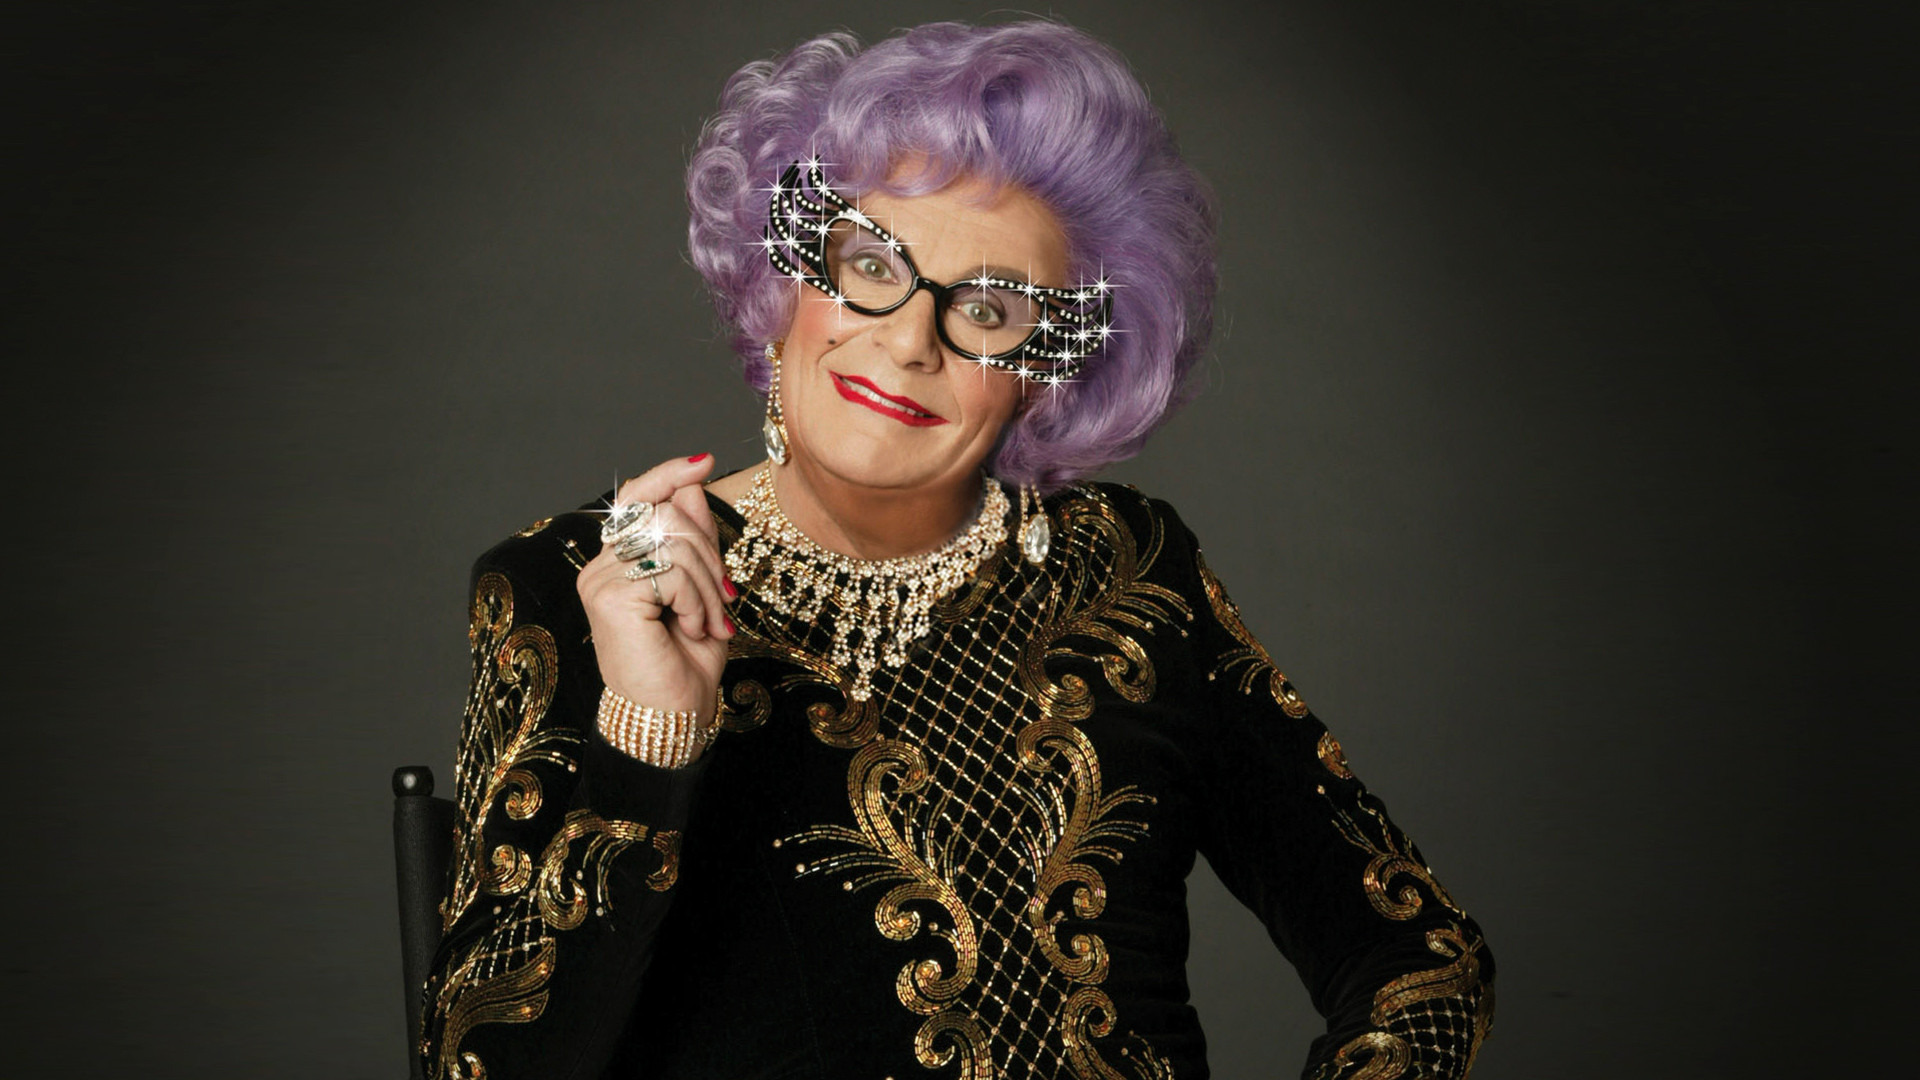 Show The Dame Edna Treatment